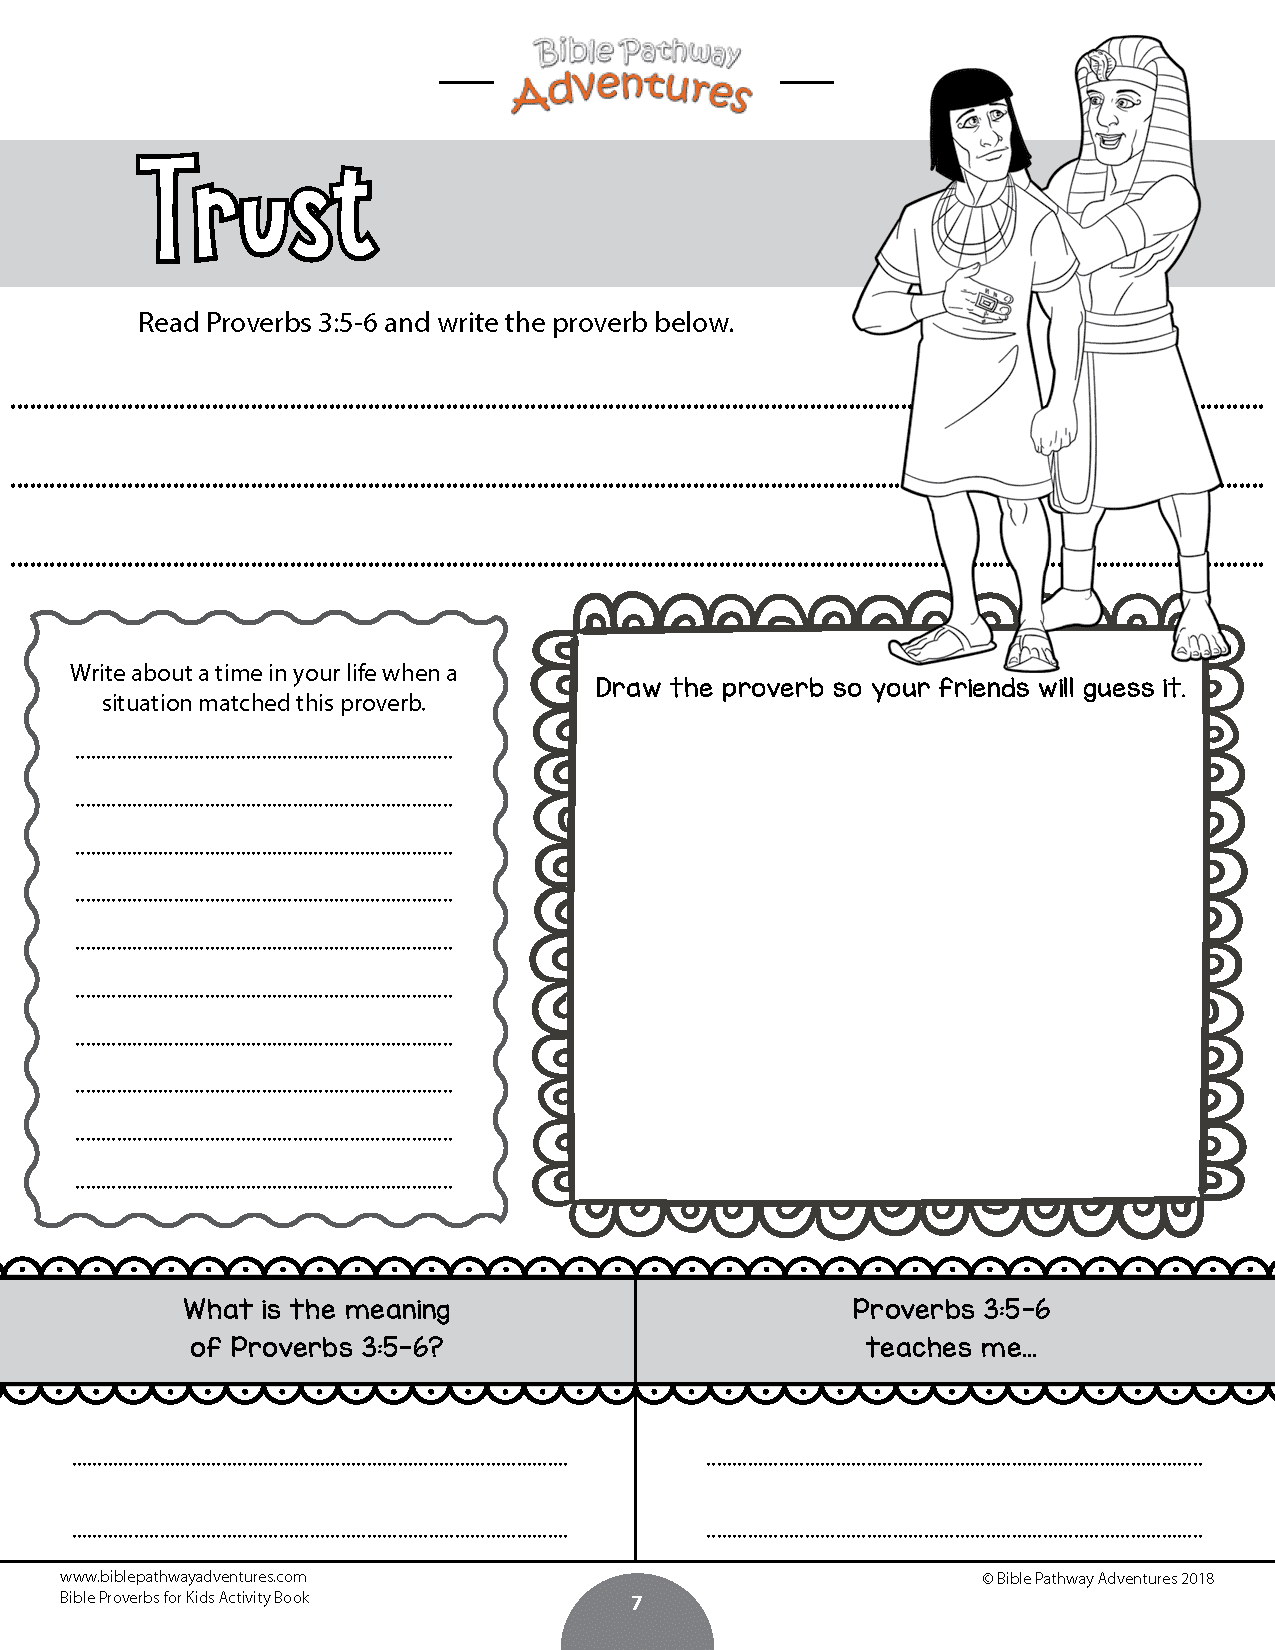 Bible Proverbs for Kids Coloring Activity Book – Bible Pathway ...